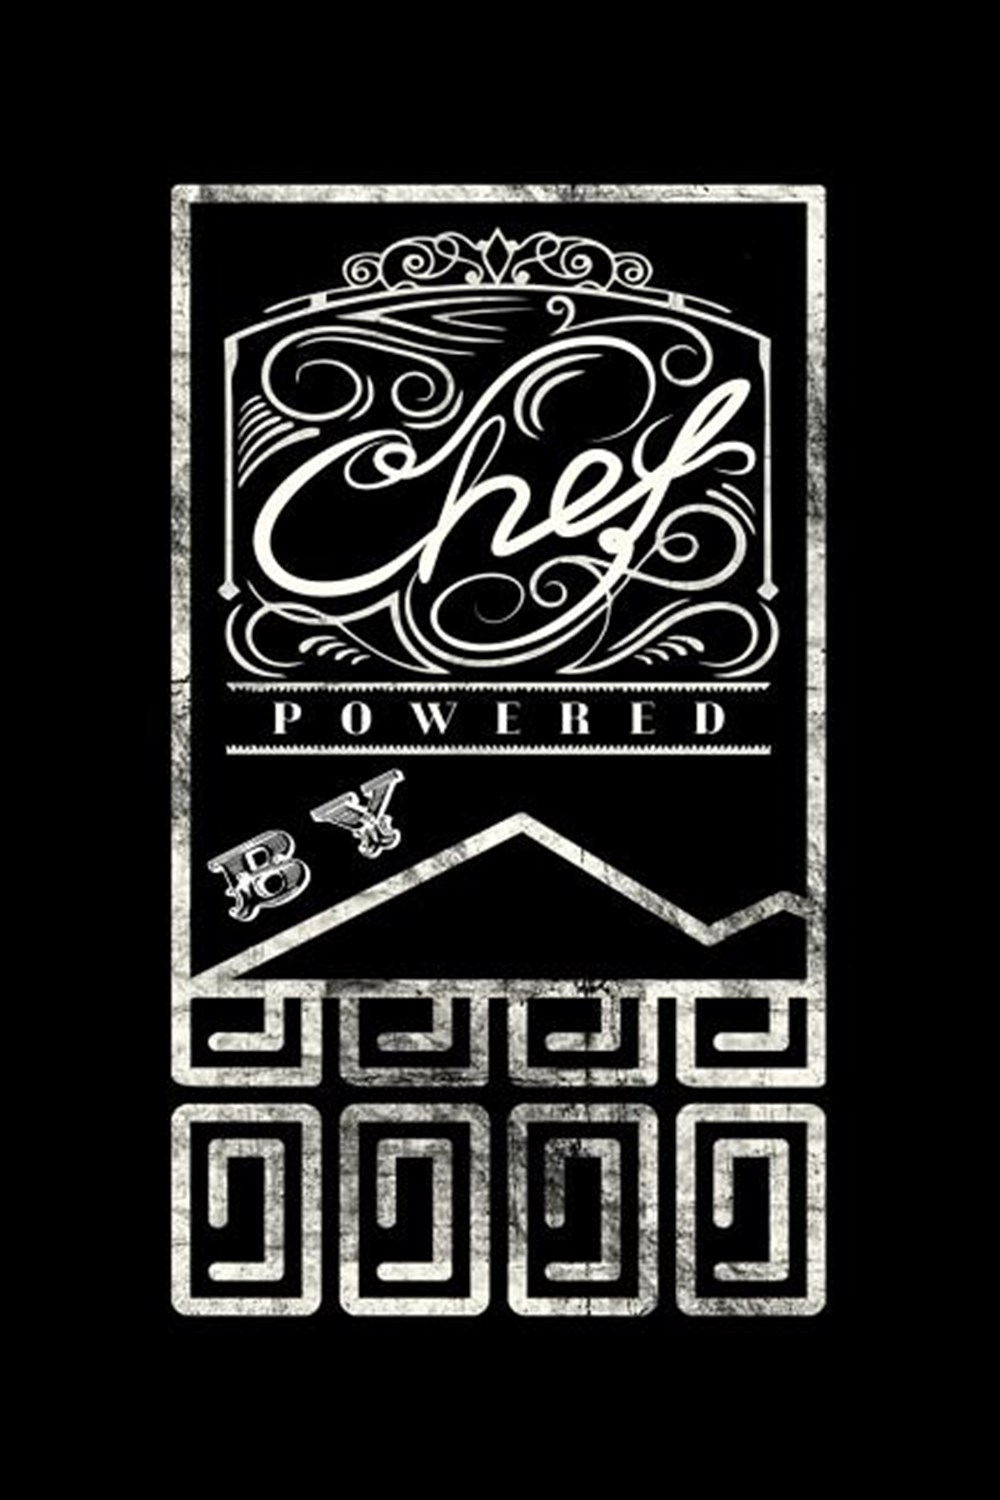 Chef Powered By Blank Paper Sketch Book - Artist Sketch Pad Journal for Sketching, Doodling, Drawing